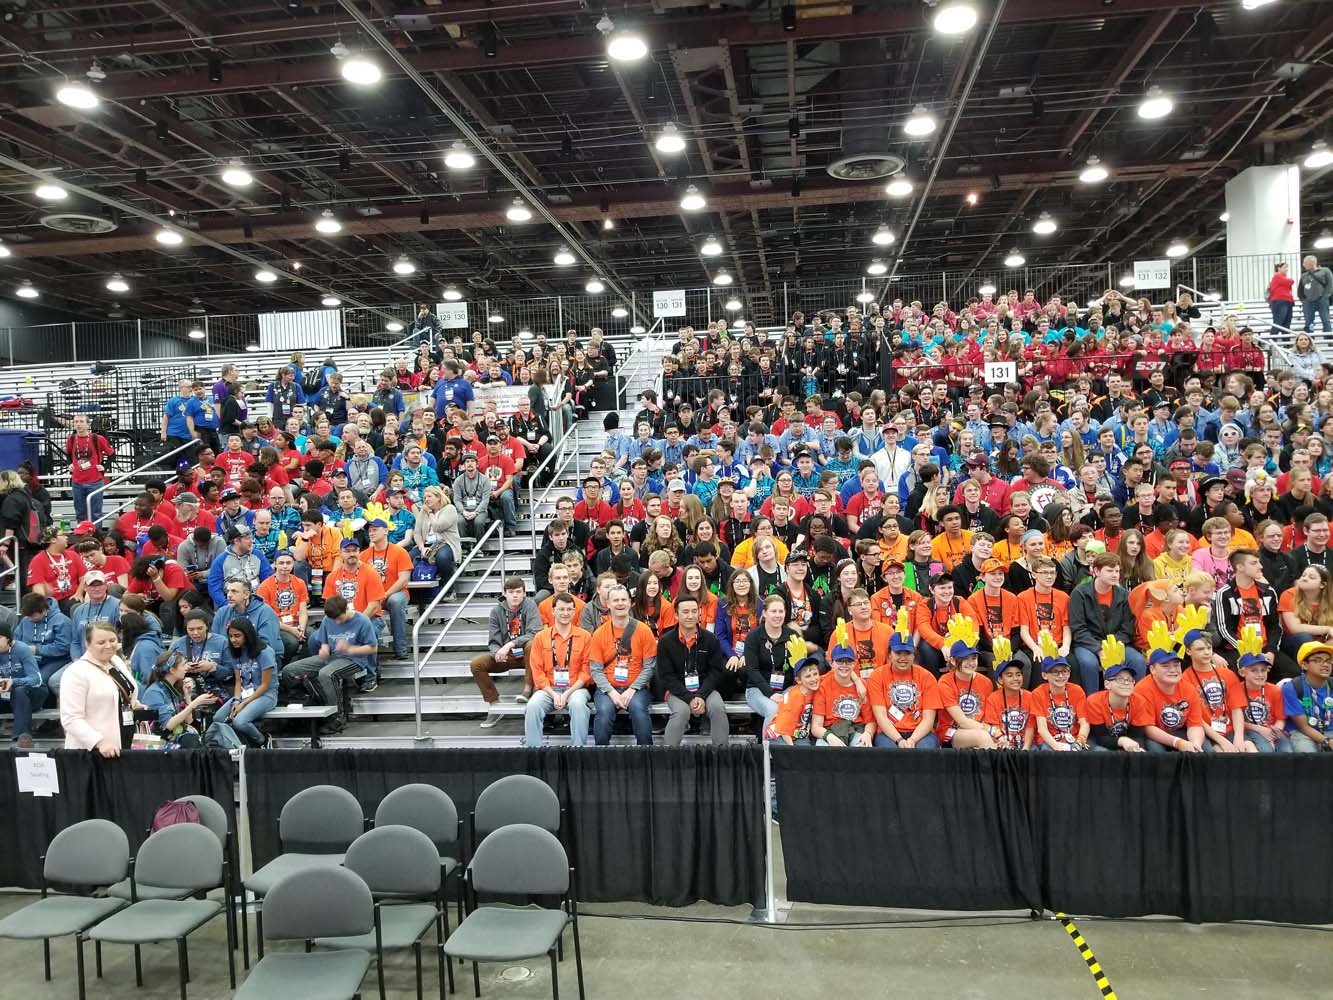 All Wisconsin World qualifiers from FRC, FTC, Lego League, and Lego League Jr (mentors on left, students on right)